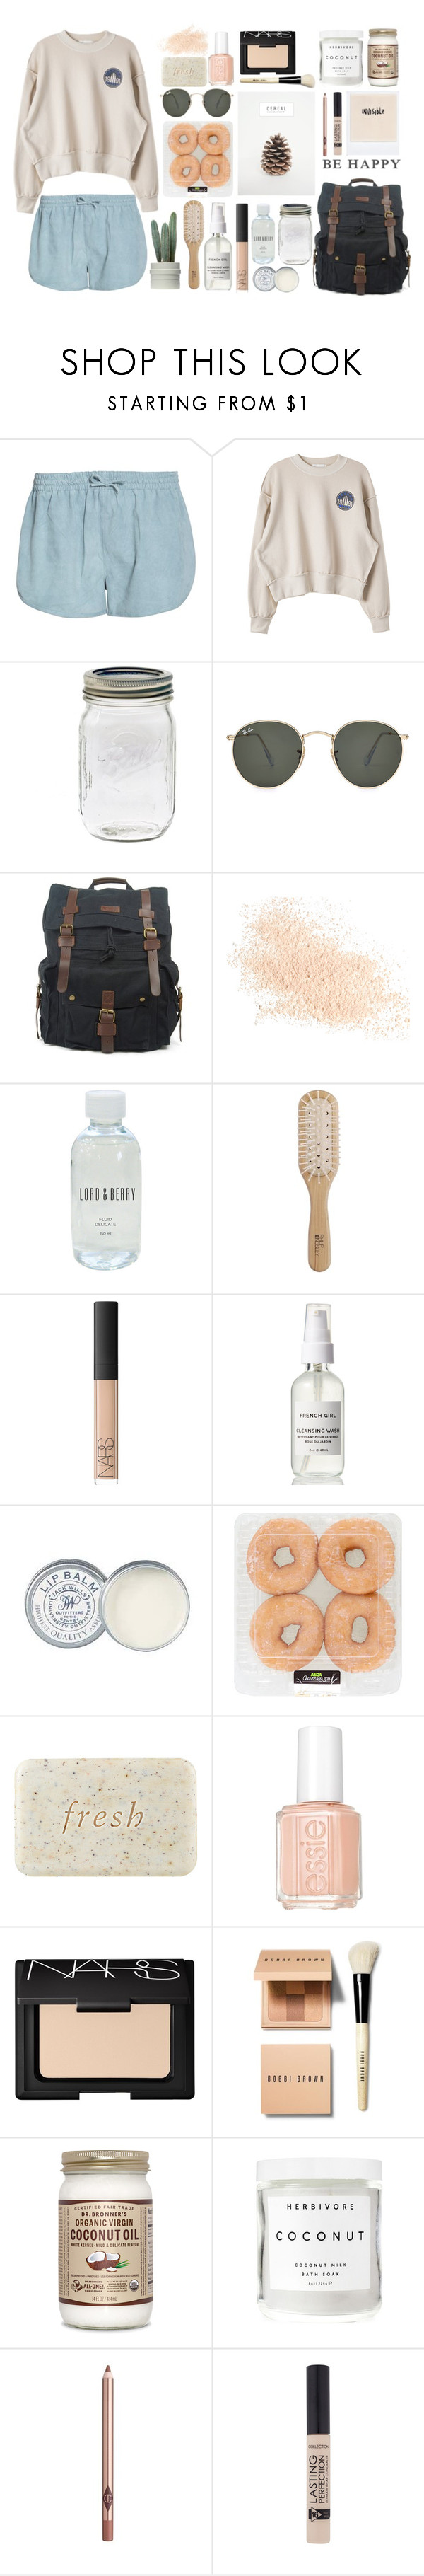 """""""-don't worry, be happy-"""" by elishaxoxo16 ❤ liked on Polyvore featuring Ganni, Ray-Ban, Eve Lom, Lord & Berry, Philip Kingsley, NARS Cosmetics, Jack Wills, Fresh, Essie and Bobbi Brown Cosmetics"""